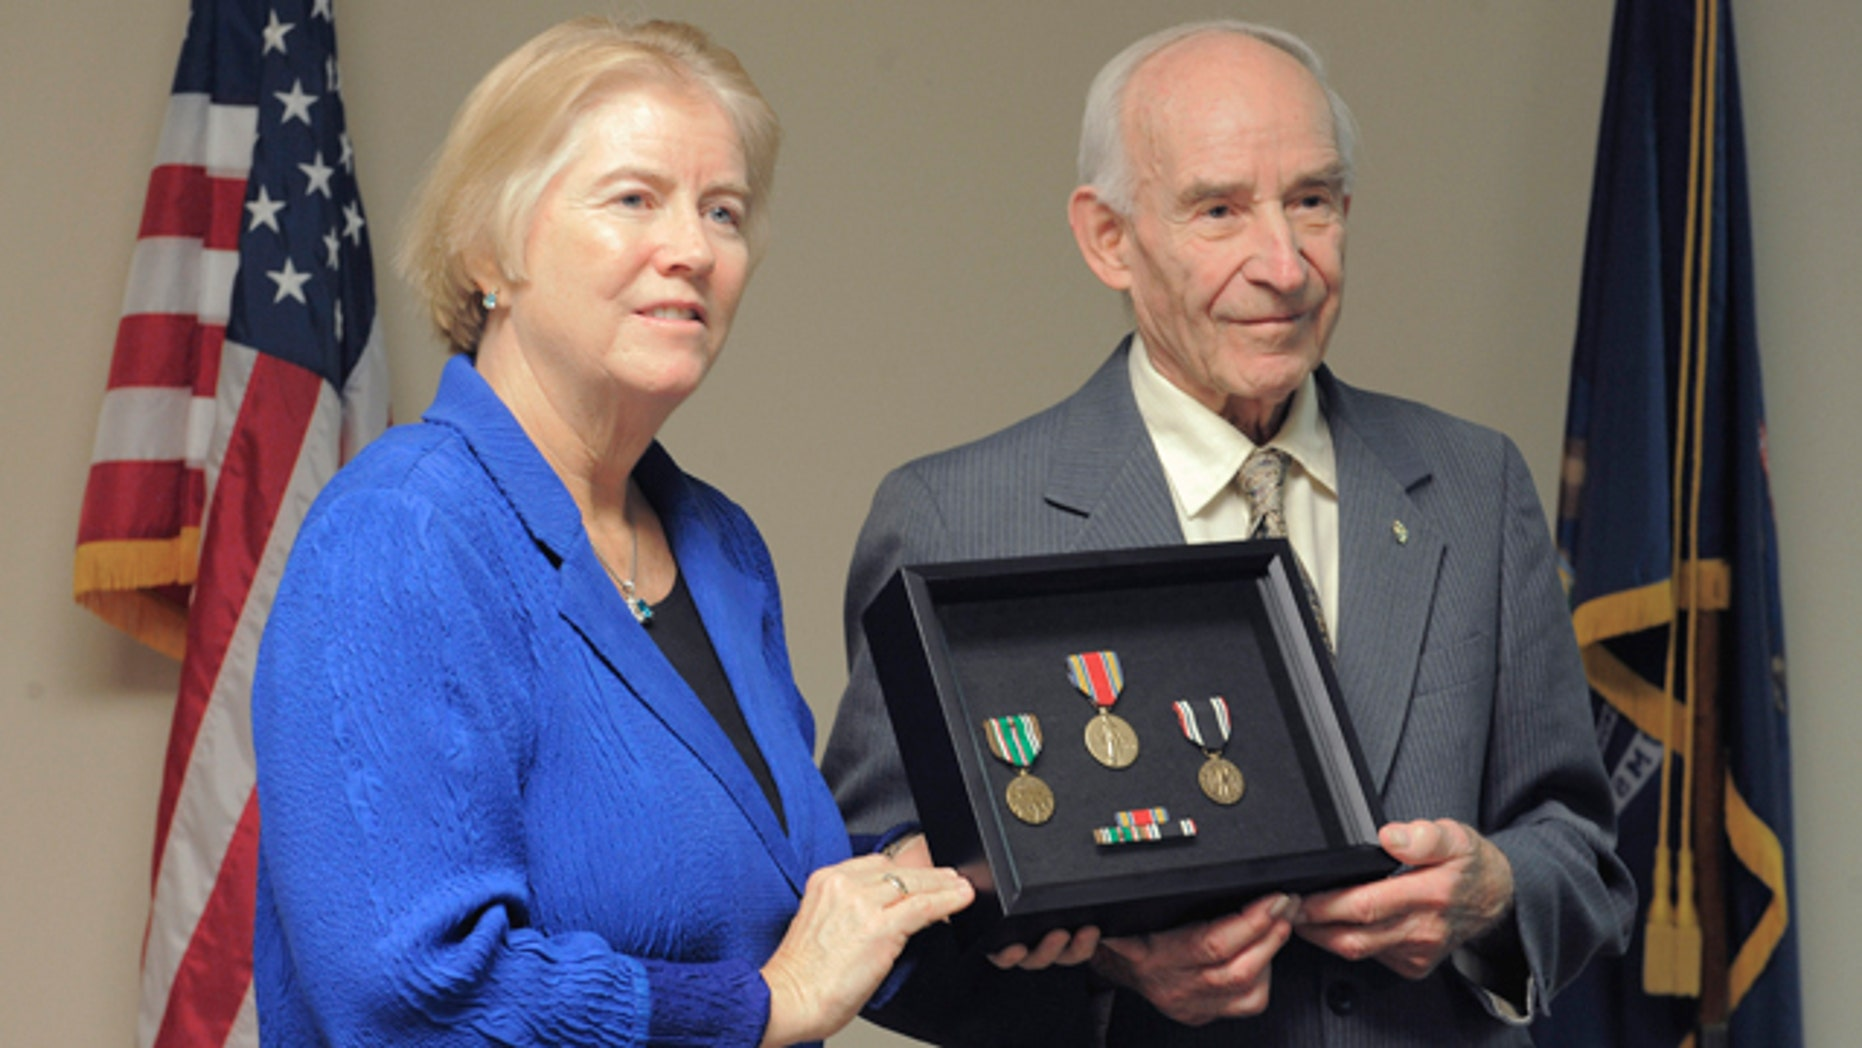 Dec. 7, 2012: Rep. Candice Miller presents William Pollauf with several medals, Friday Dec. 7, 2012, at her office in Shelby Twp., Mich.